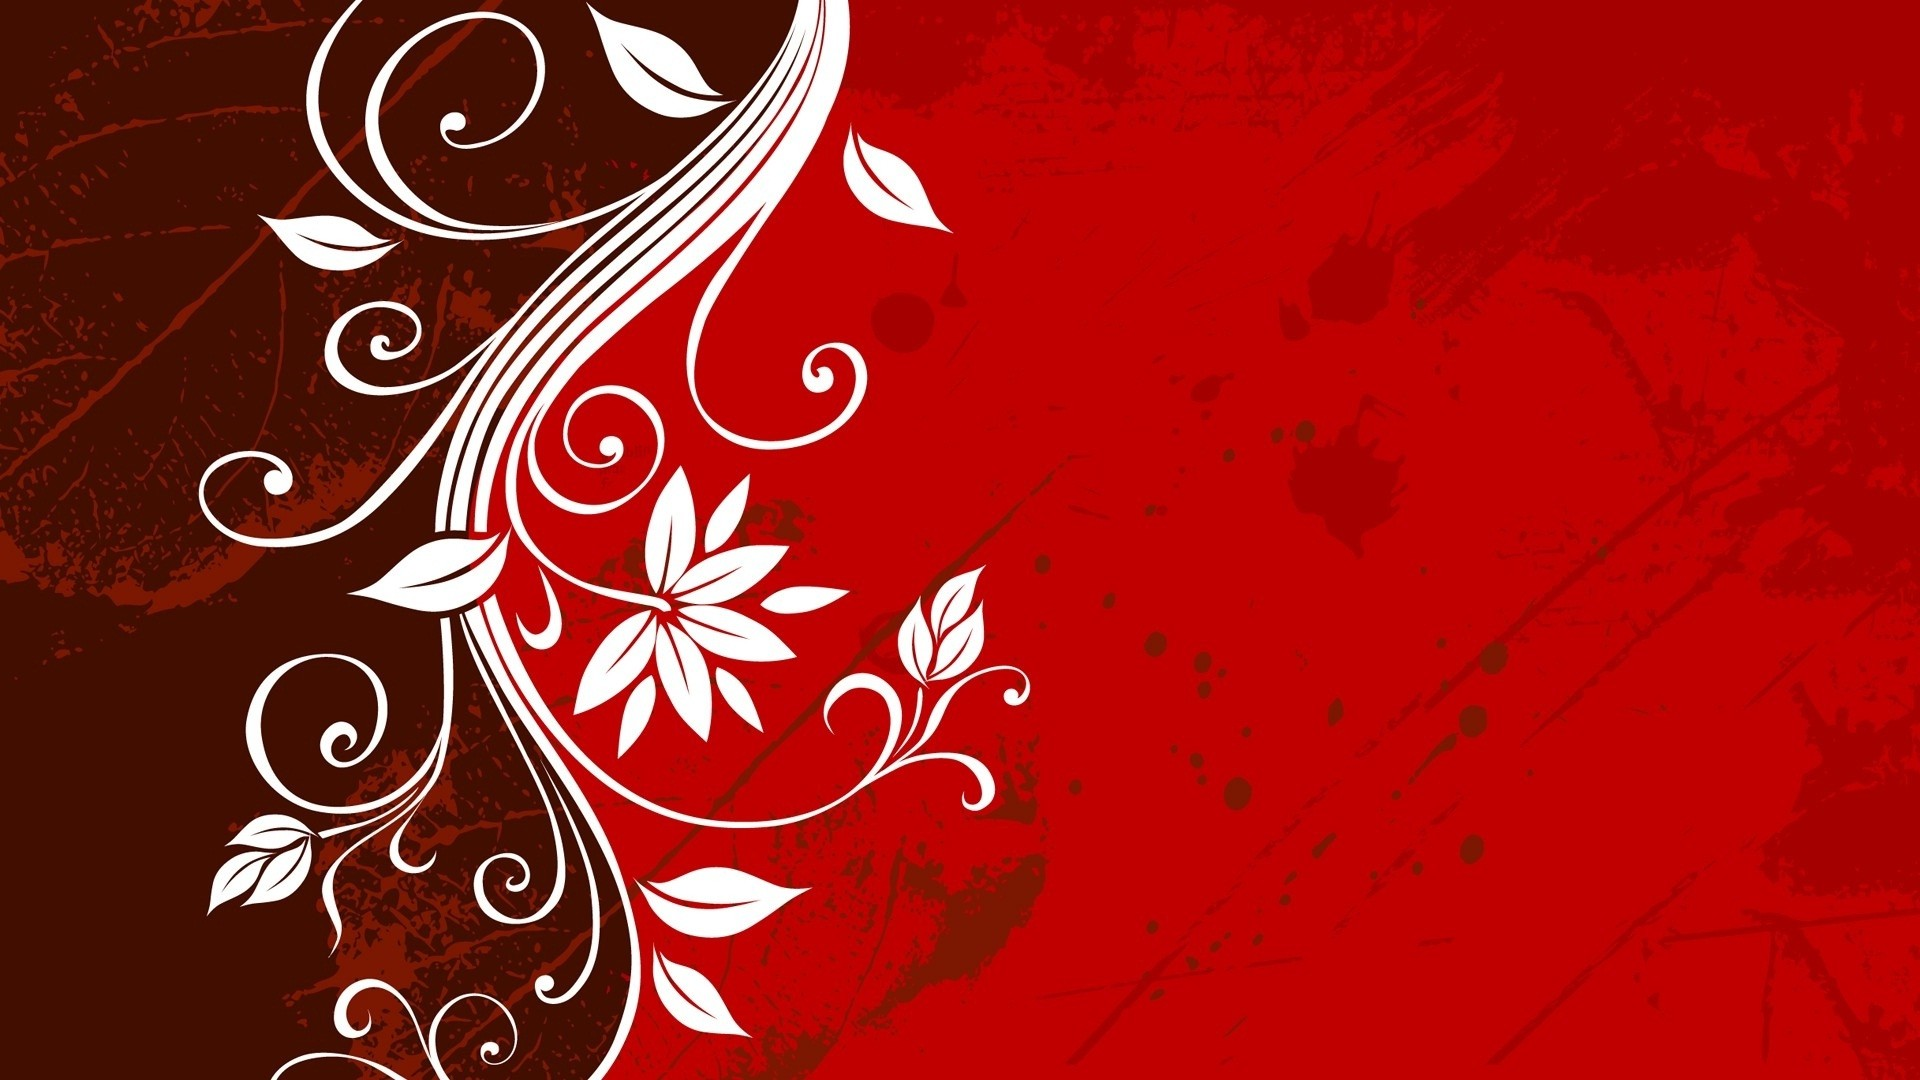 Awesome flowery design dark red background wallpapers